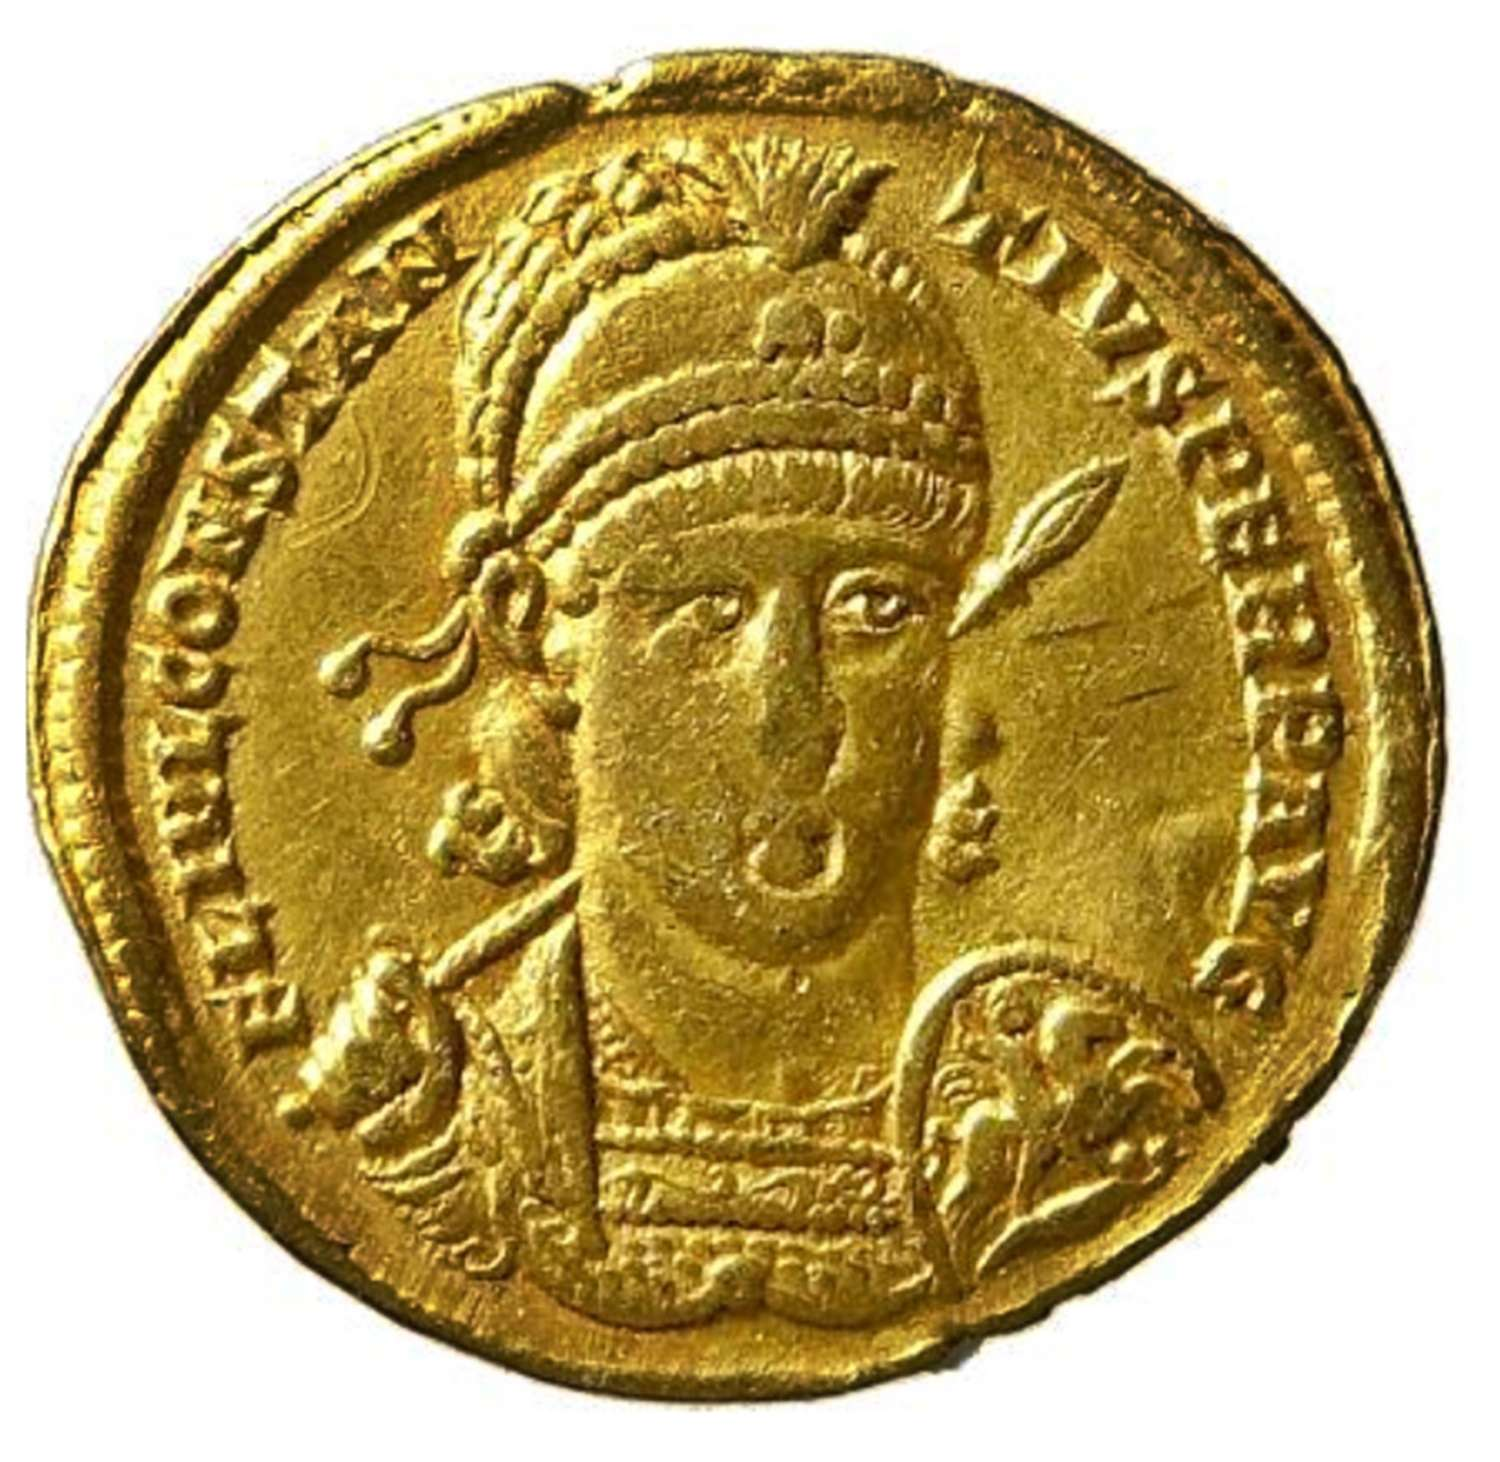 Roman Gold Solidus of Emperor Constantius II from the Antioch mint